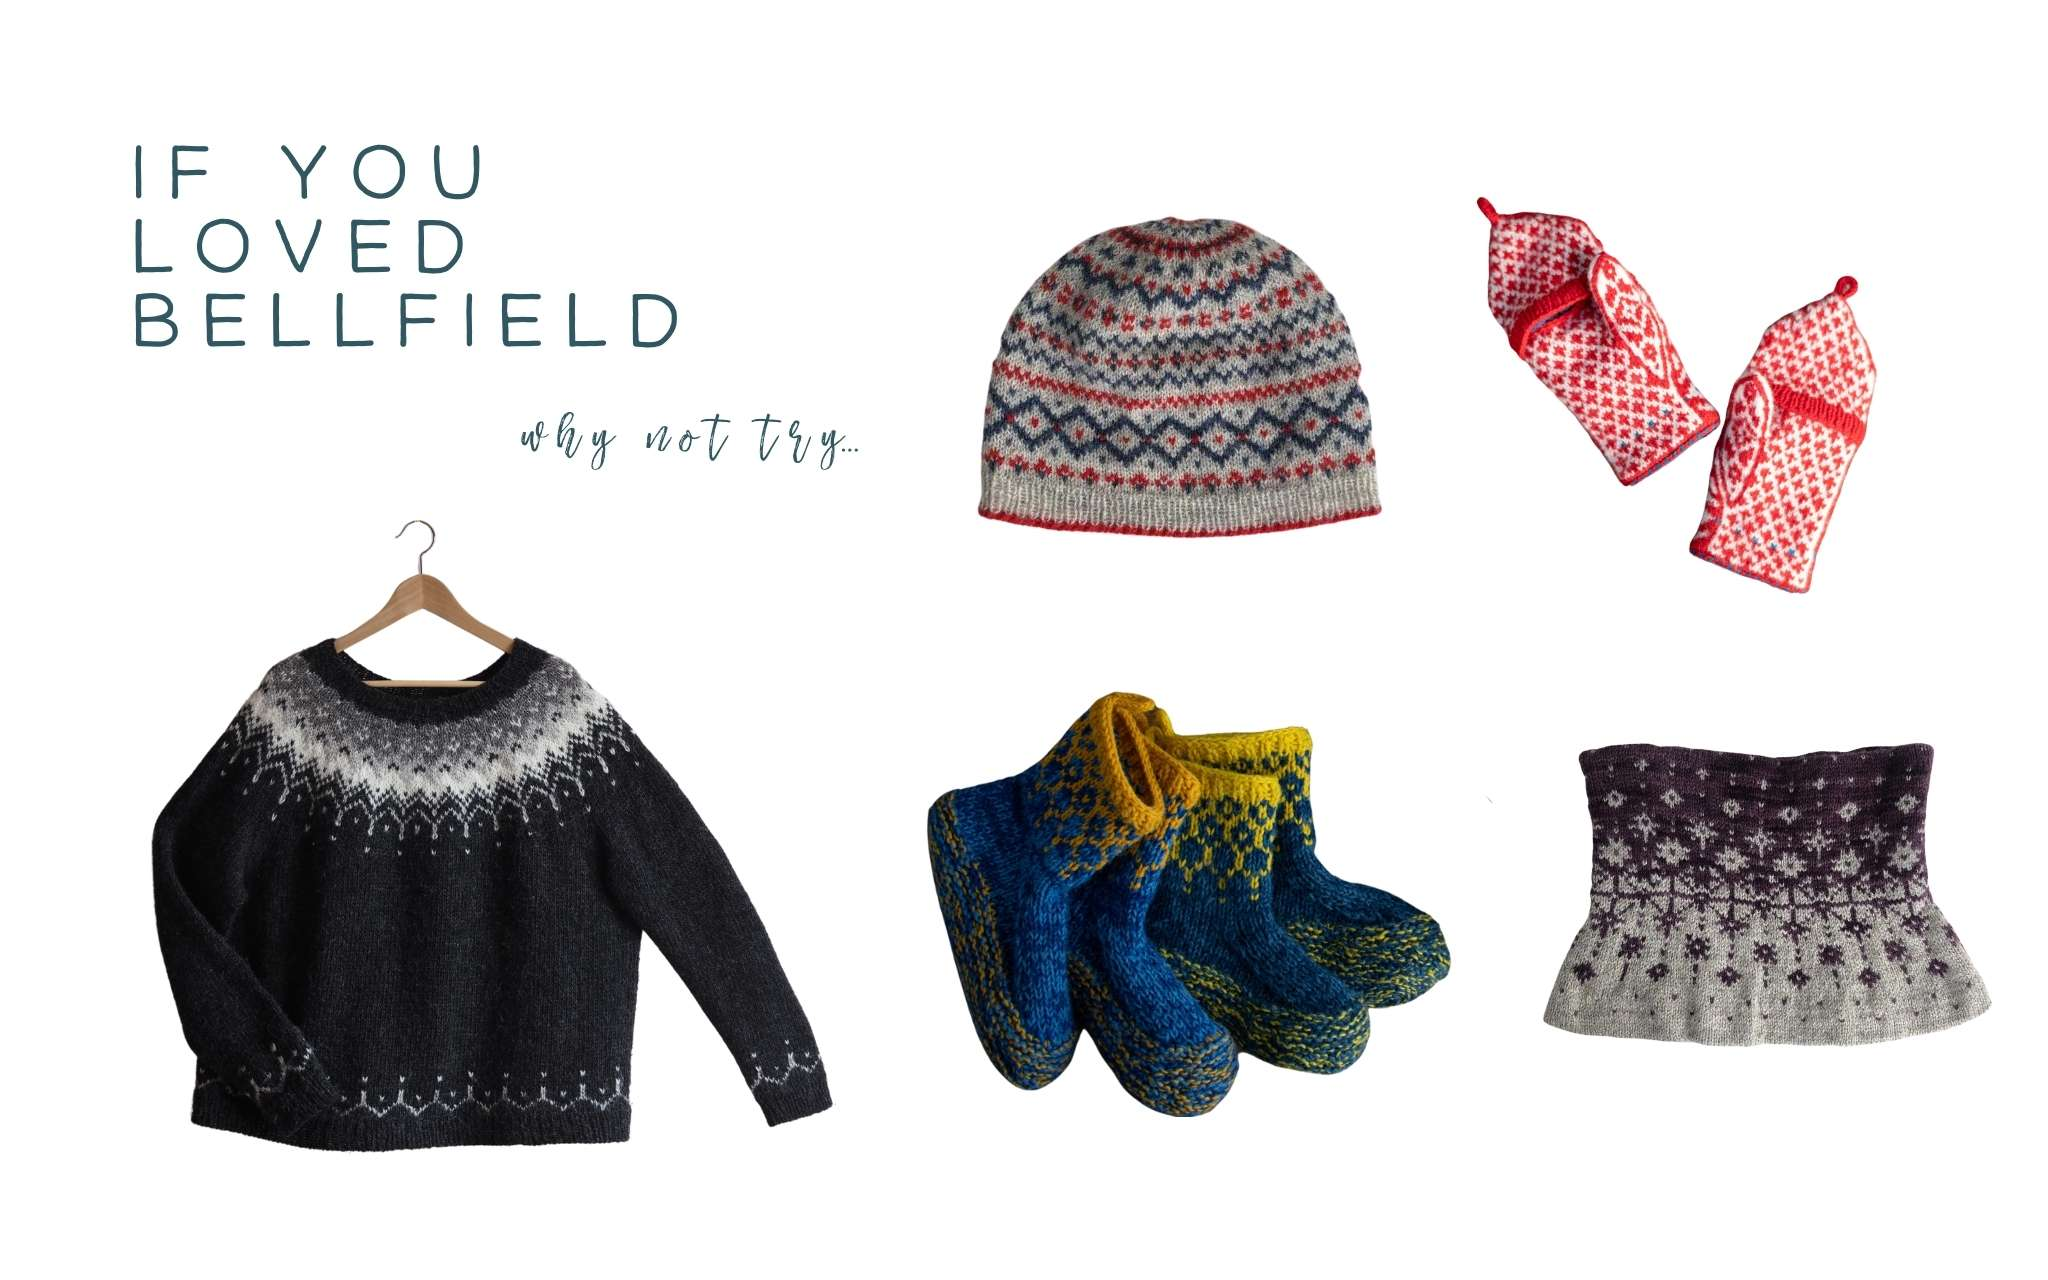 a graph with the text 'if you loved Bellfield, why not try...' and flat images of a sweater, a hat, a cowl, mittens and slippers on a white background.